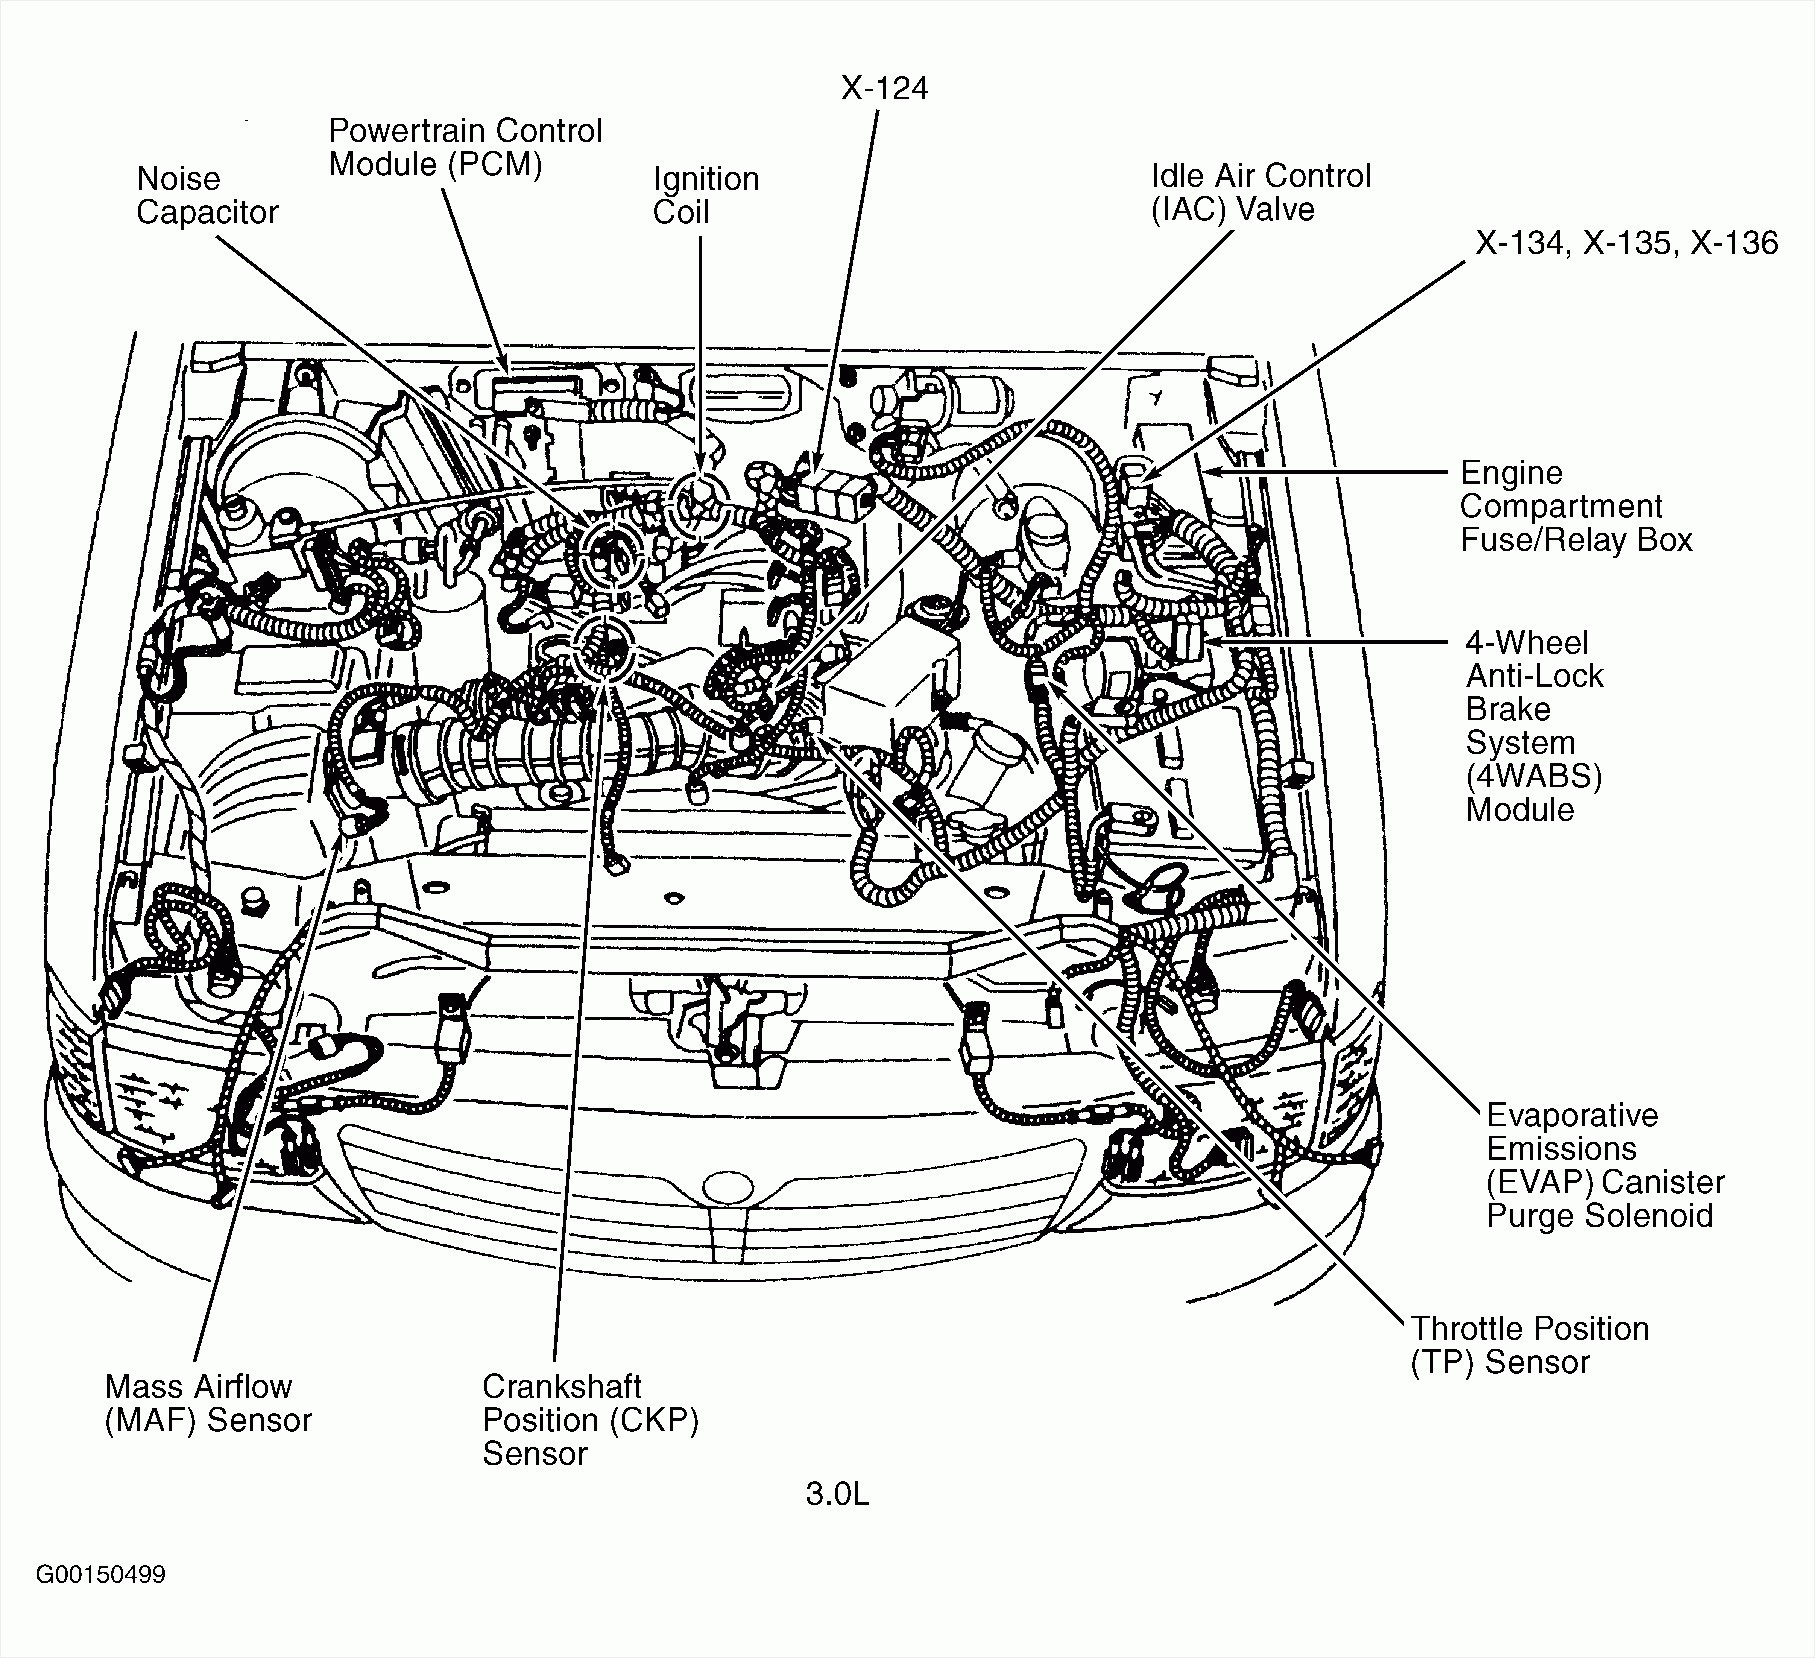 hight resolution of ranger engine diagram wiring diagram expert 2002 ford ranger 3 0 engine diagram 2002 ford ranger 3 0 engine diagram